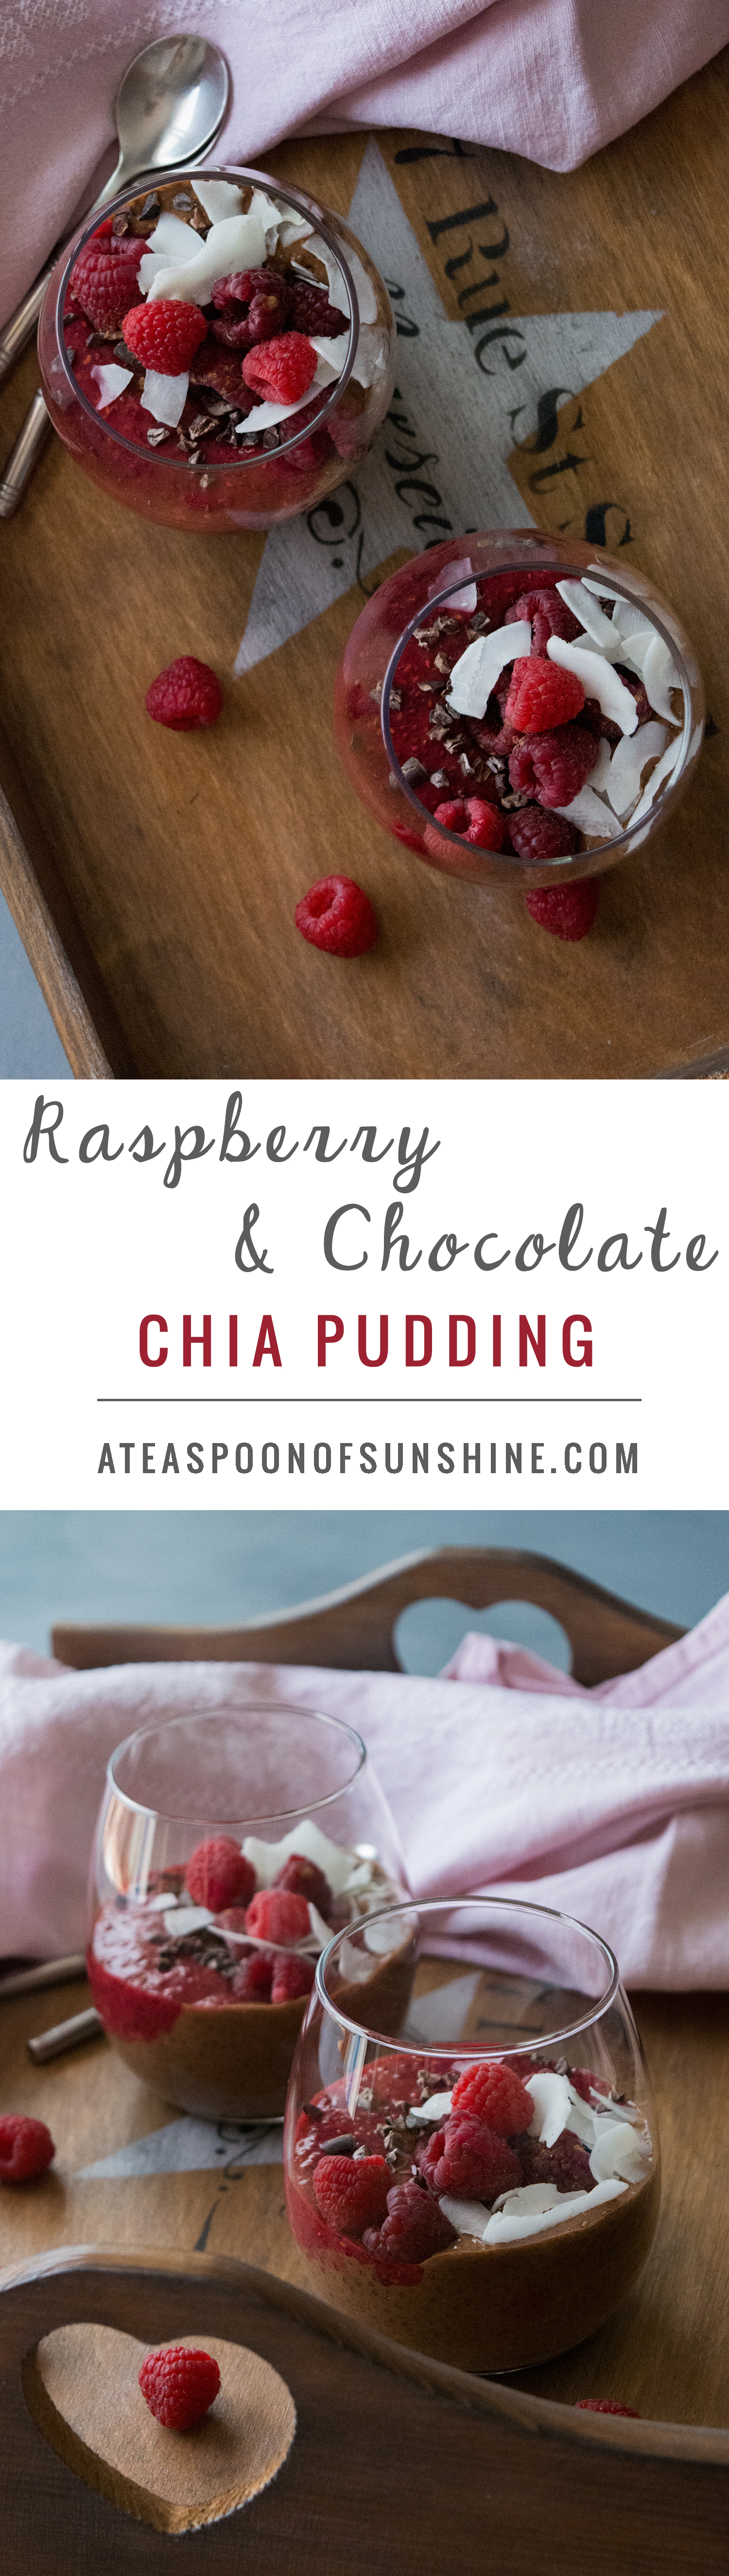 Raspberry & Chocolate Chia Pudding